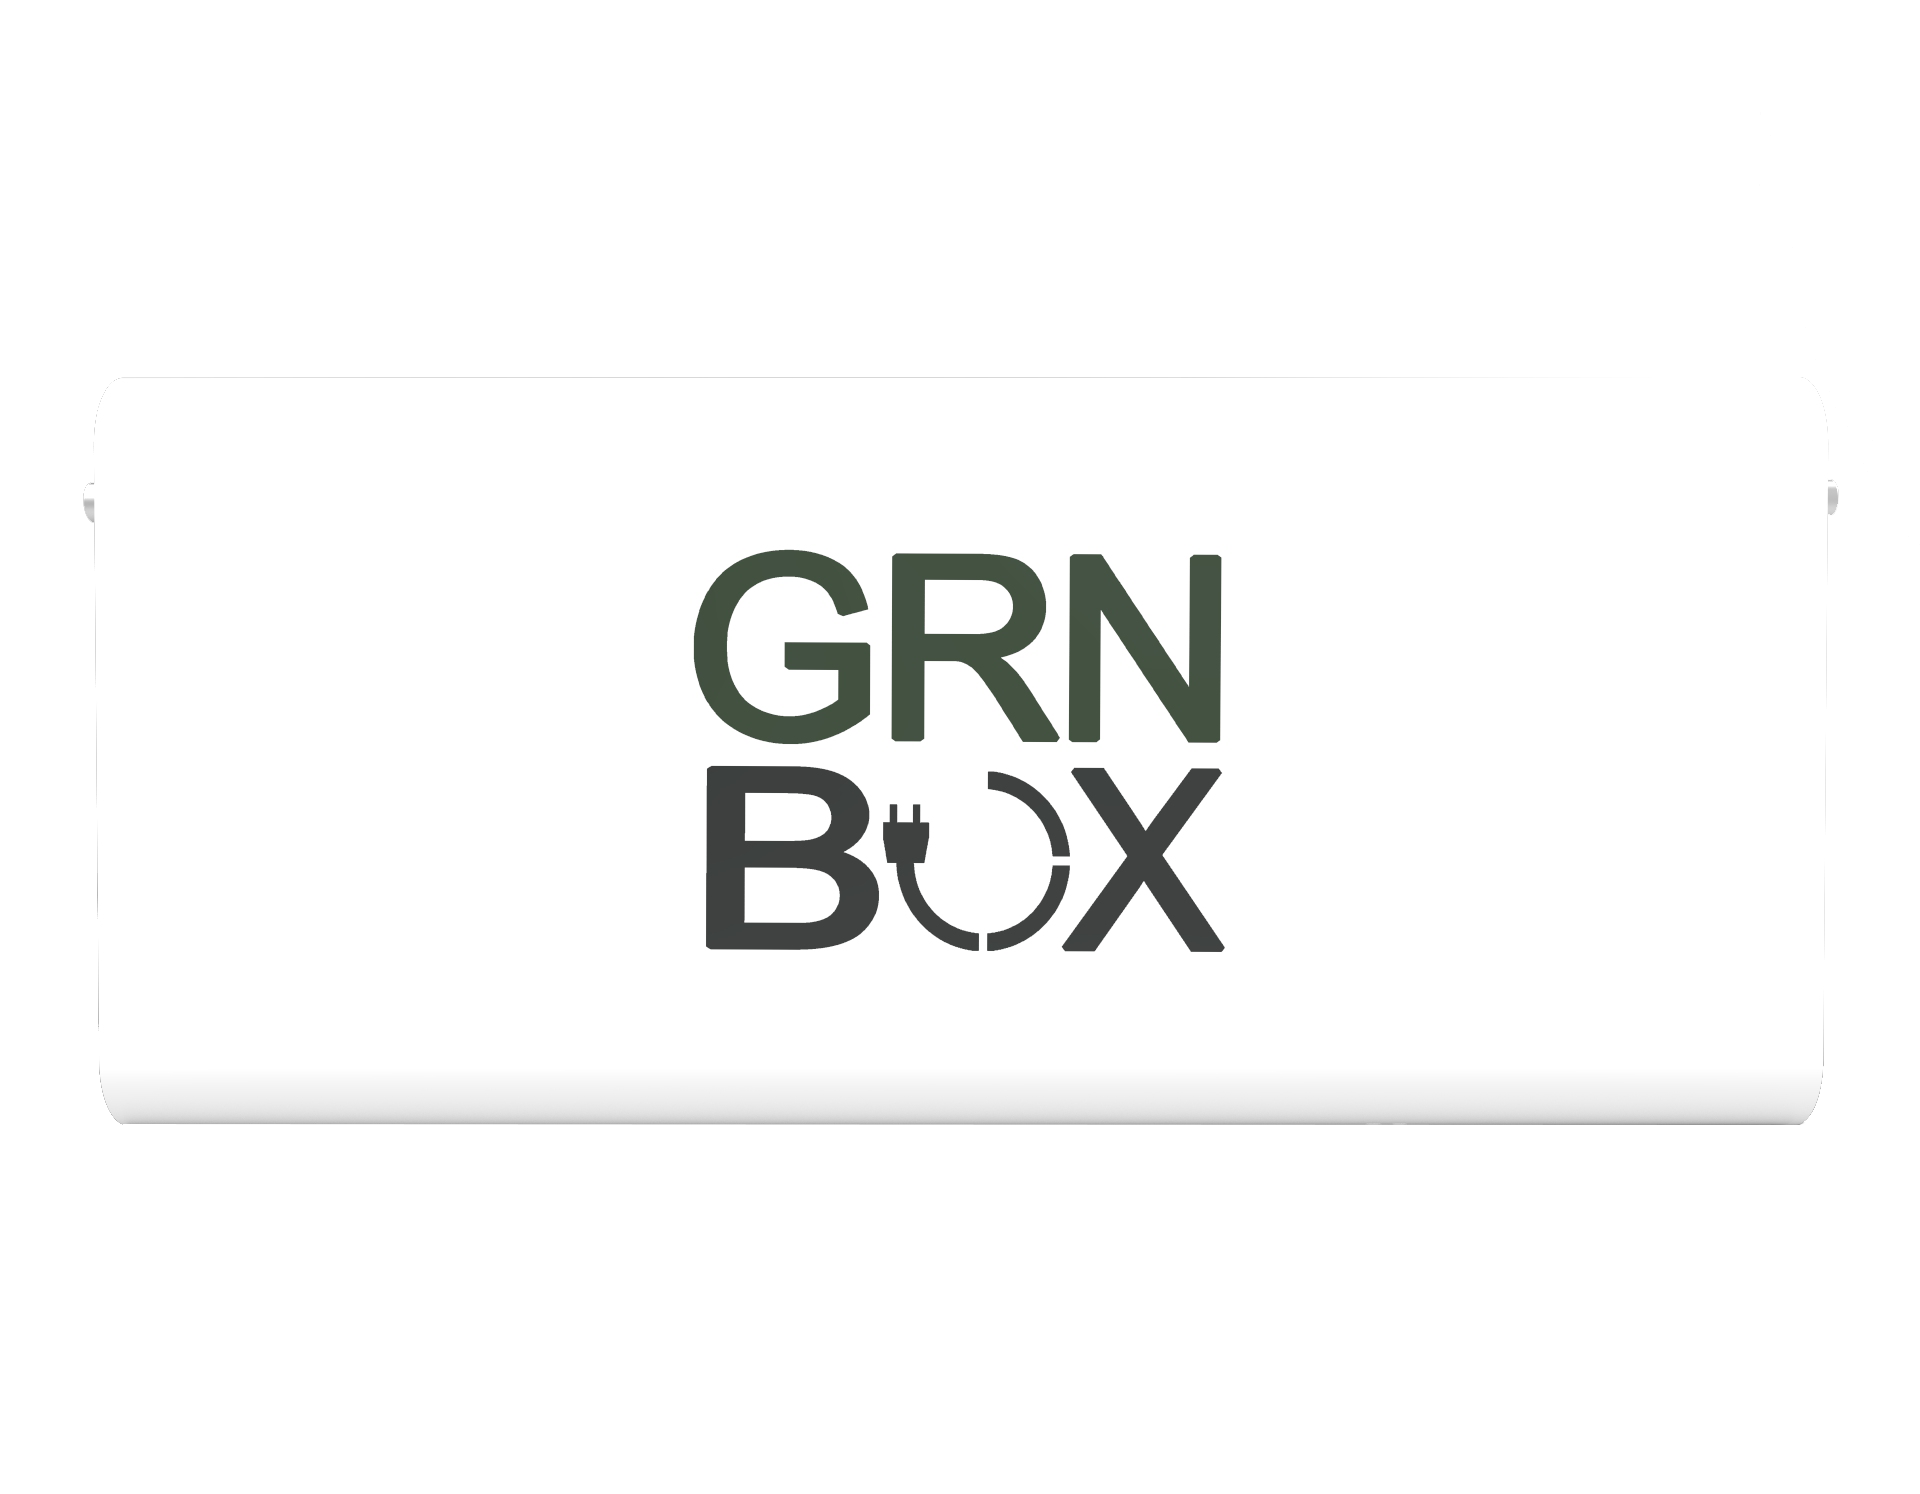 greenbox zijzicht